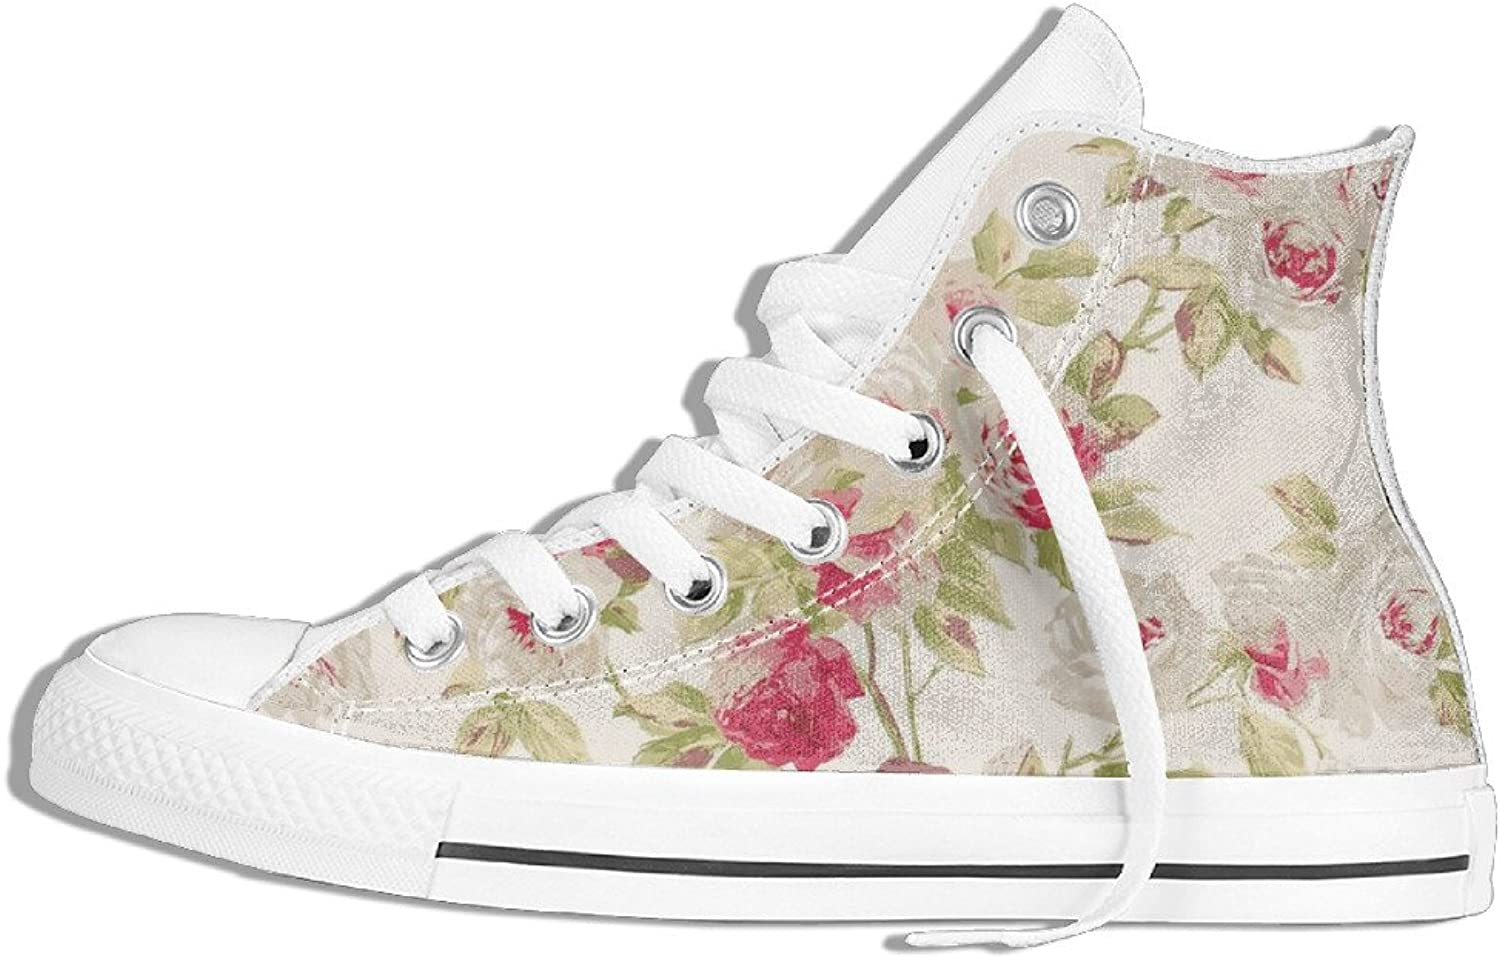 Efbj Fashion Floral Unisex Comfortable High Top Canvas Sneaker for Men and Women